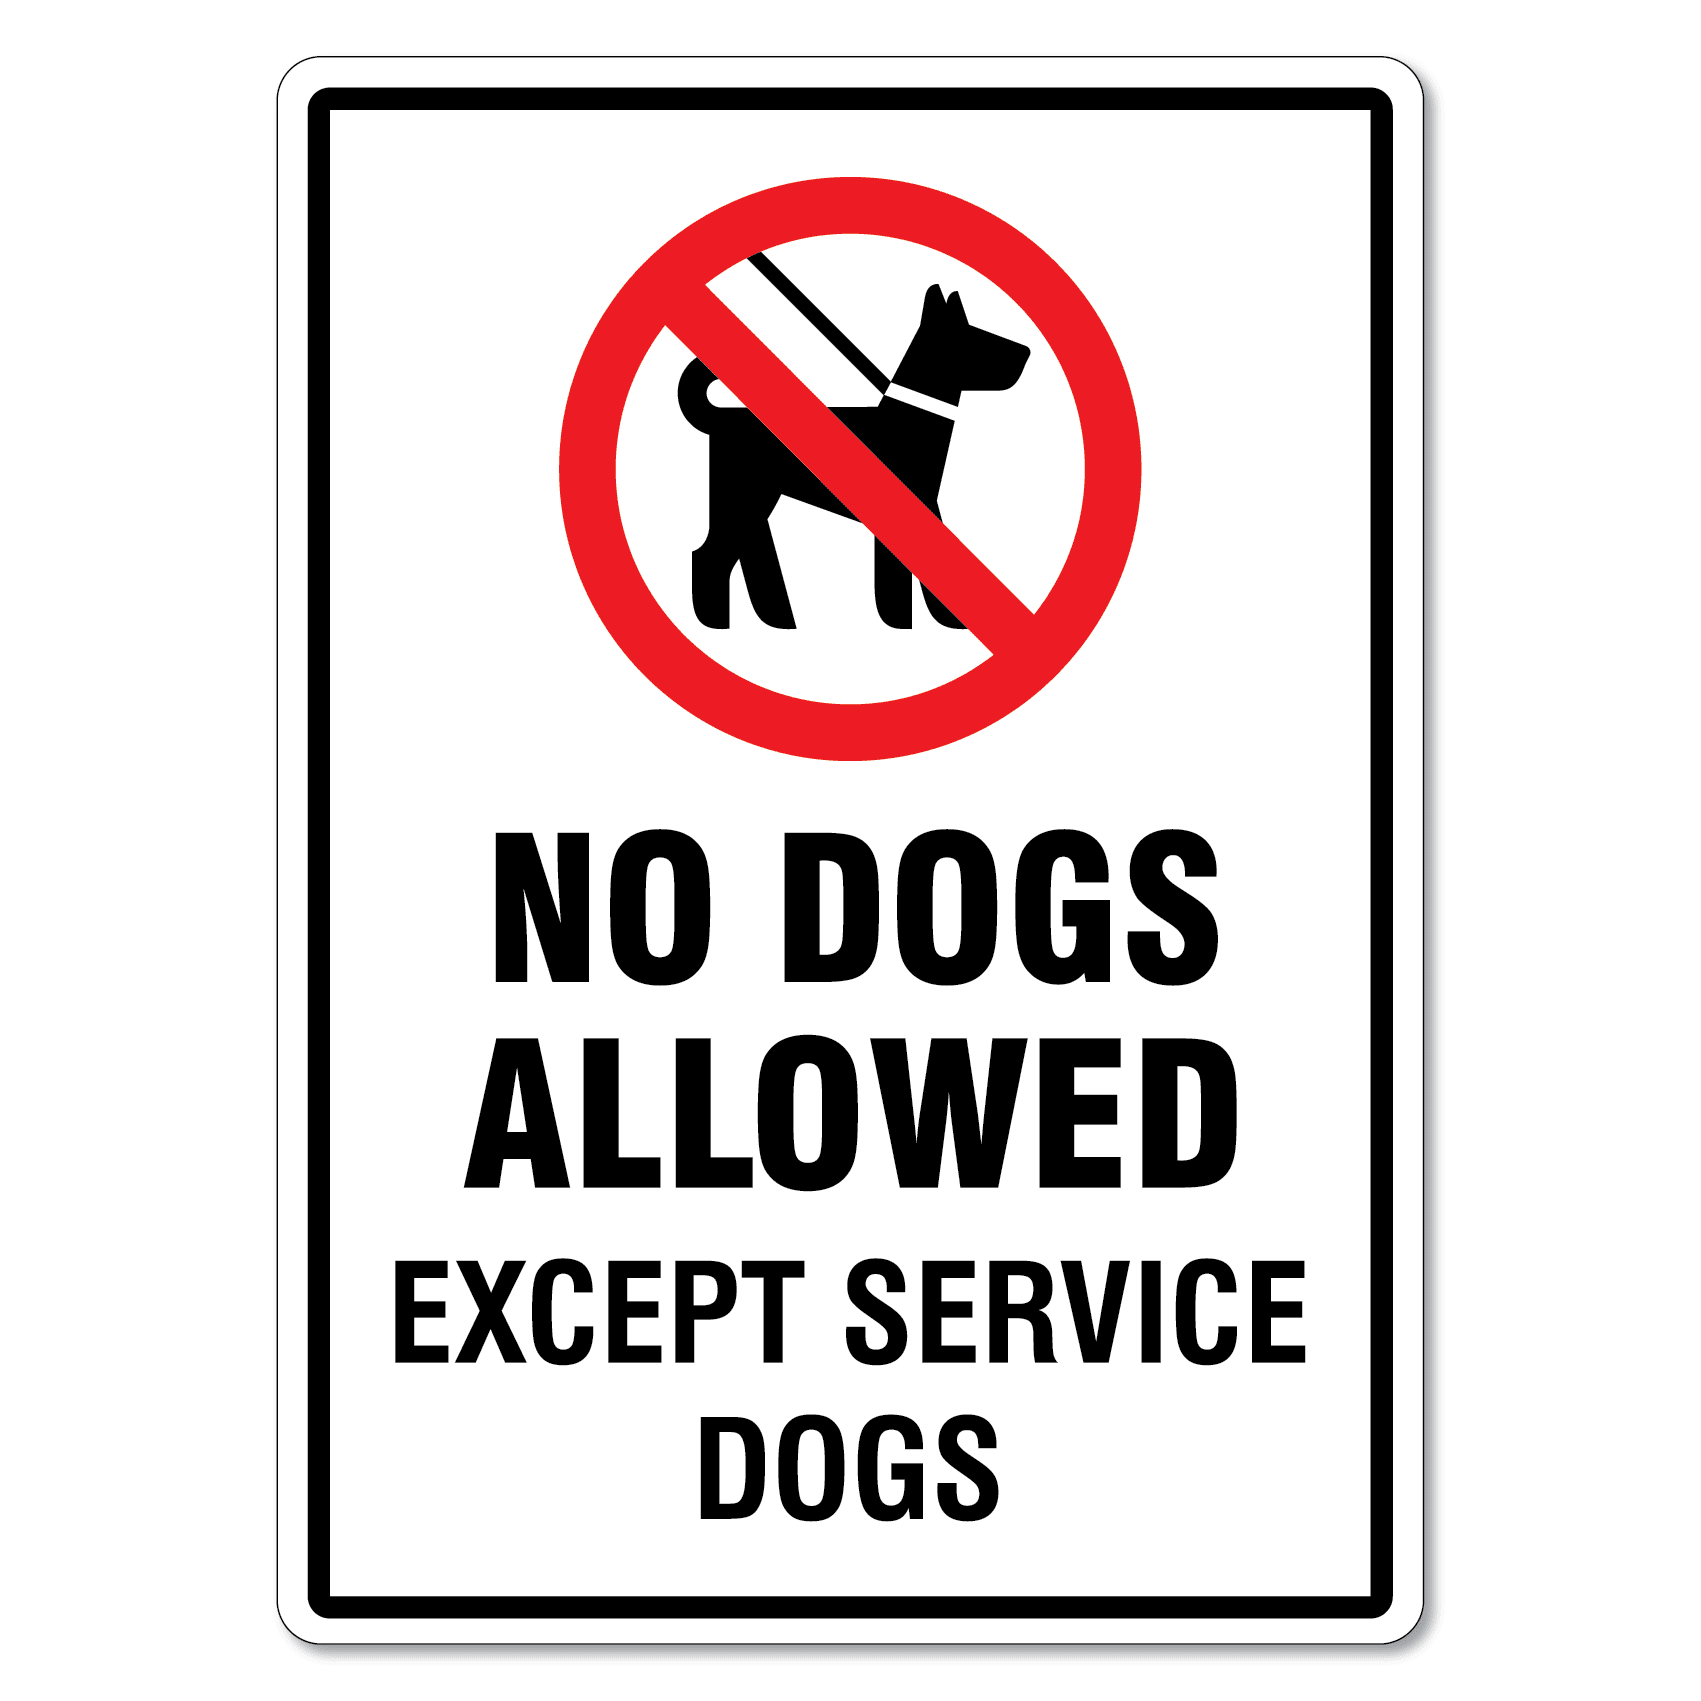 No Dogs Allowed Except Service Dogs